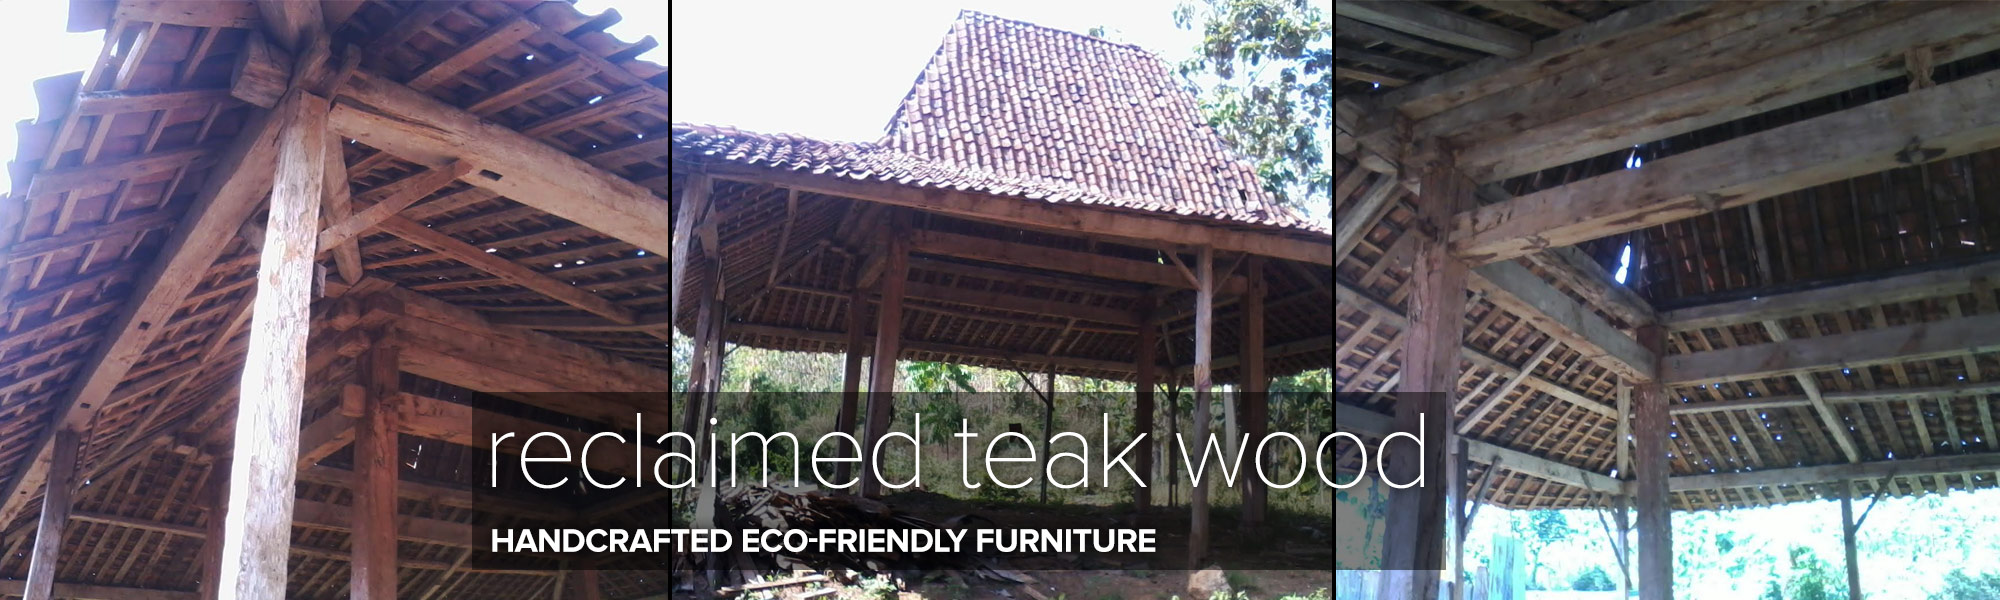 This image of Reclaimed Teak Wood structures is a good illustration of where we get our teak. We never cut down trees—everything comes from existing structures that are carefully disassembled, and we reclaim the wood.